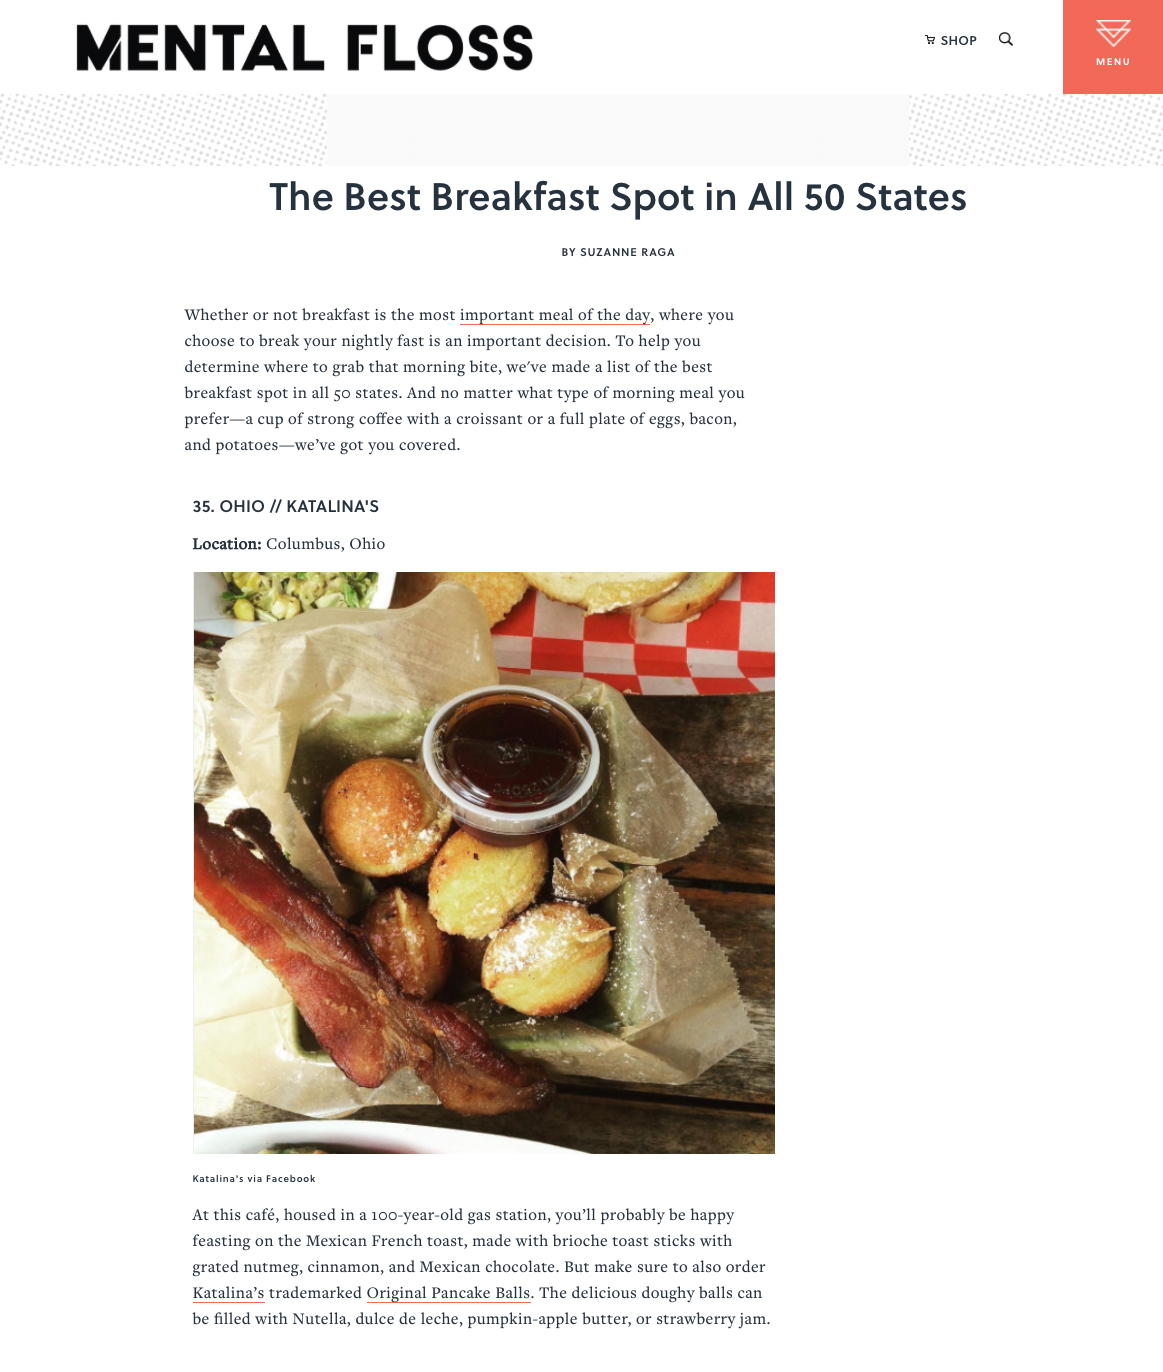 The Best Breakfast Spot in All 50 States